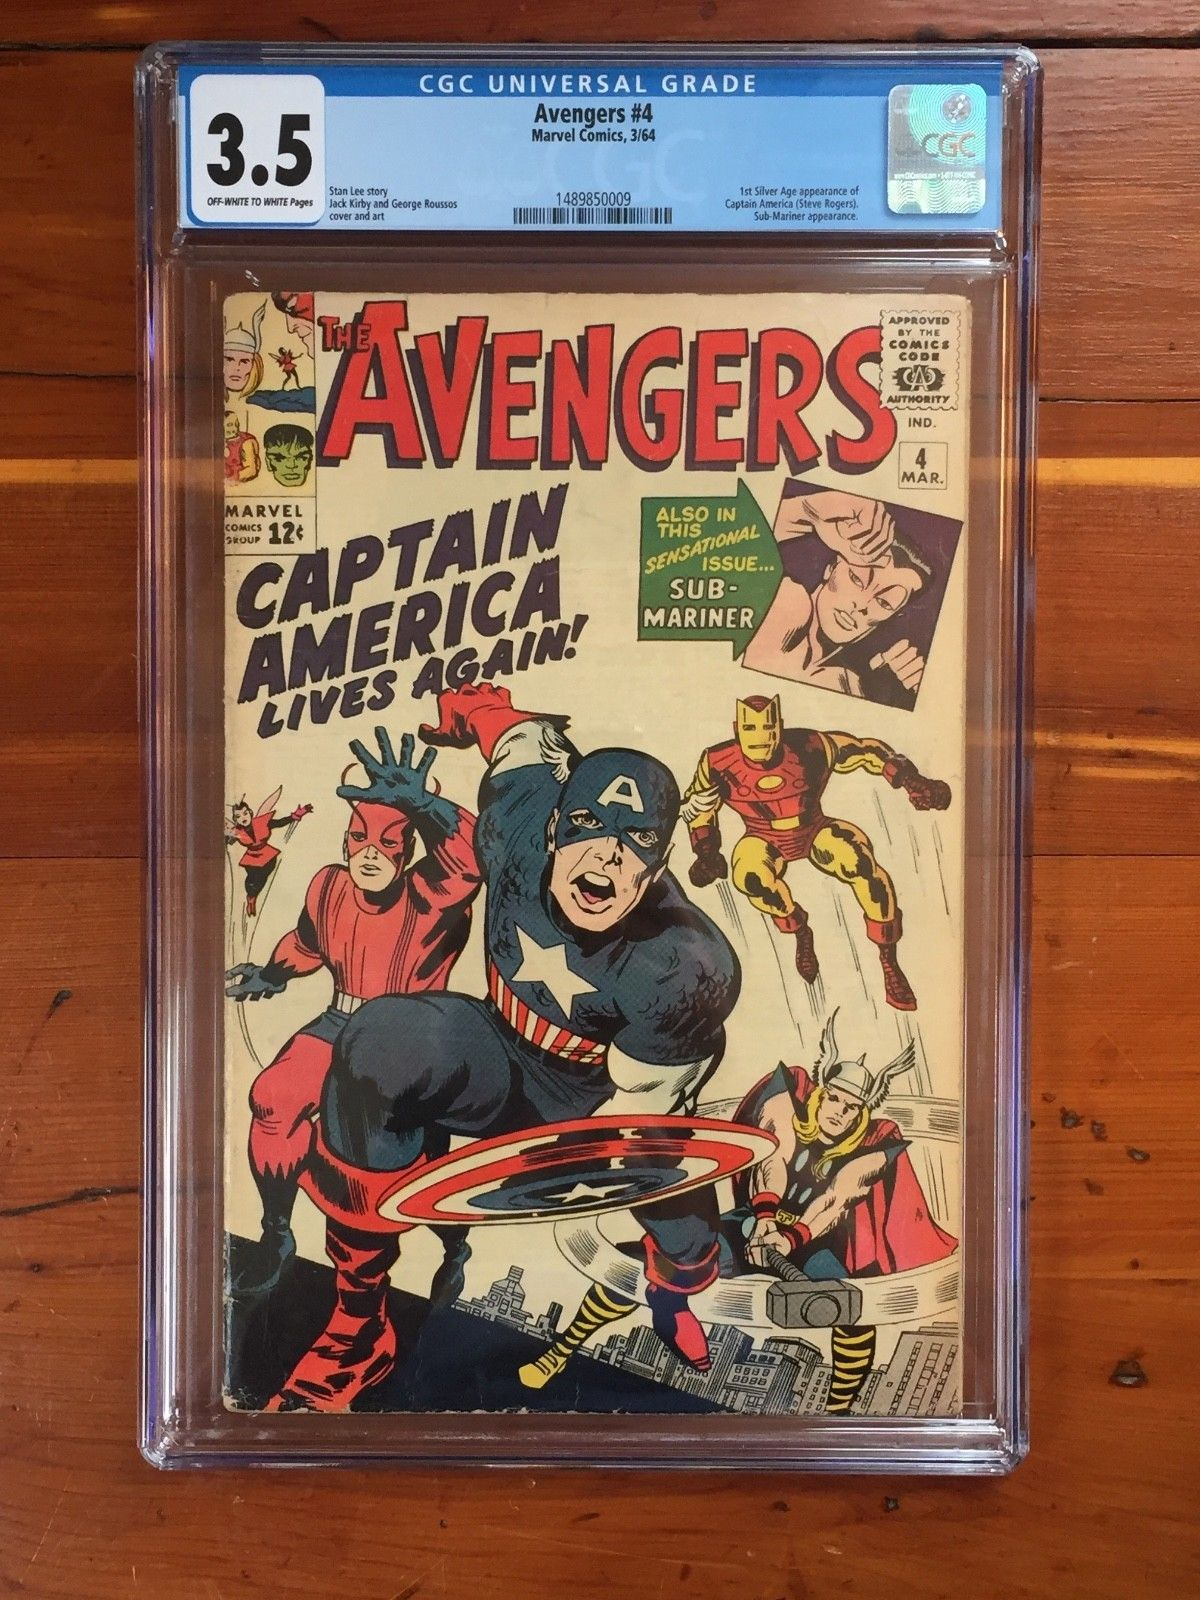 Avengers #4 - CGC 3.5 - 1st Silver Age App of Captain America (1964)